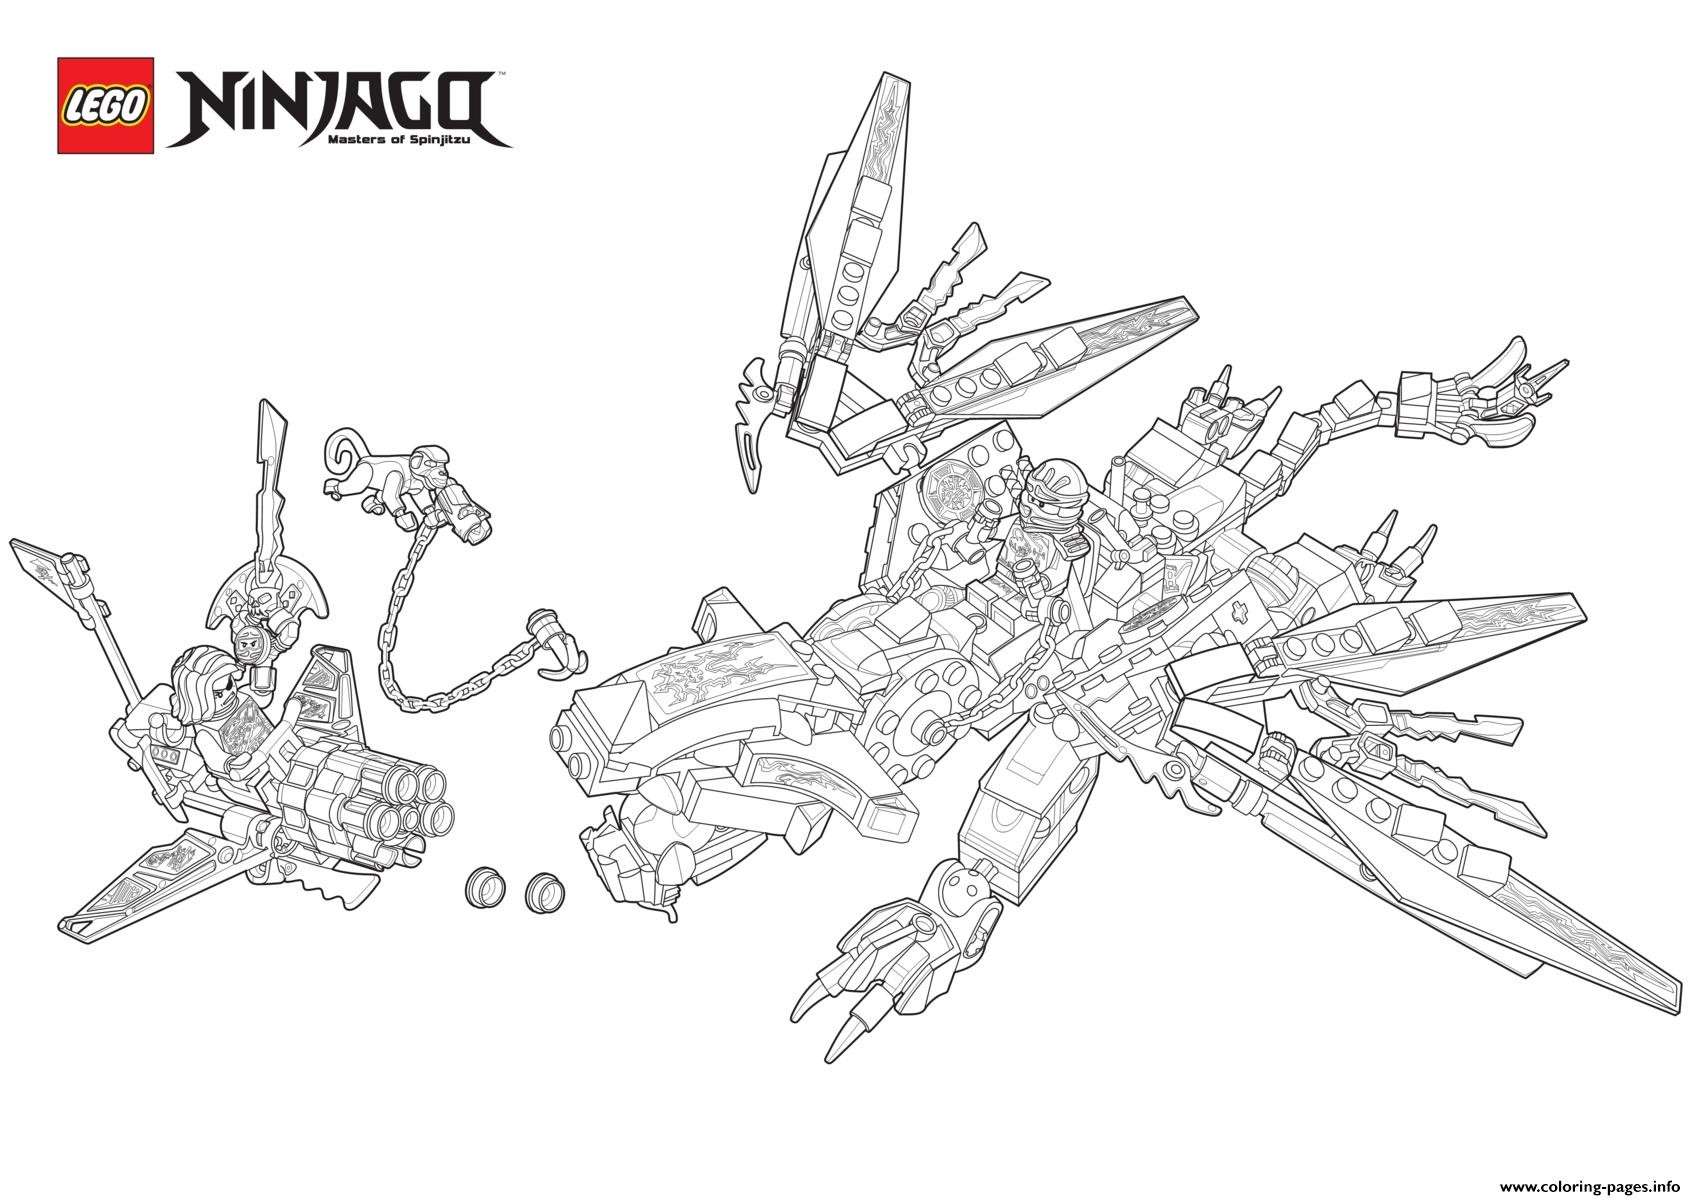 ninjago monster dragon lego coloring pages - Ninjago Coloring Pages To Print